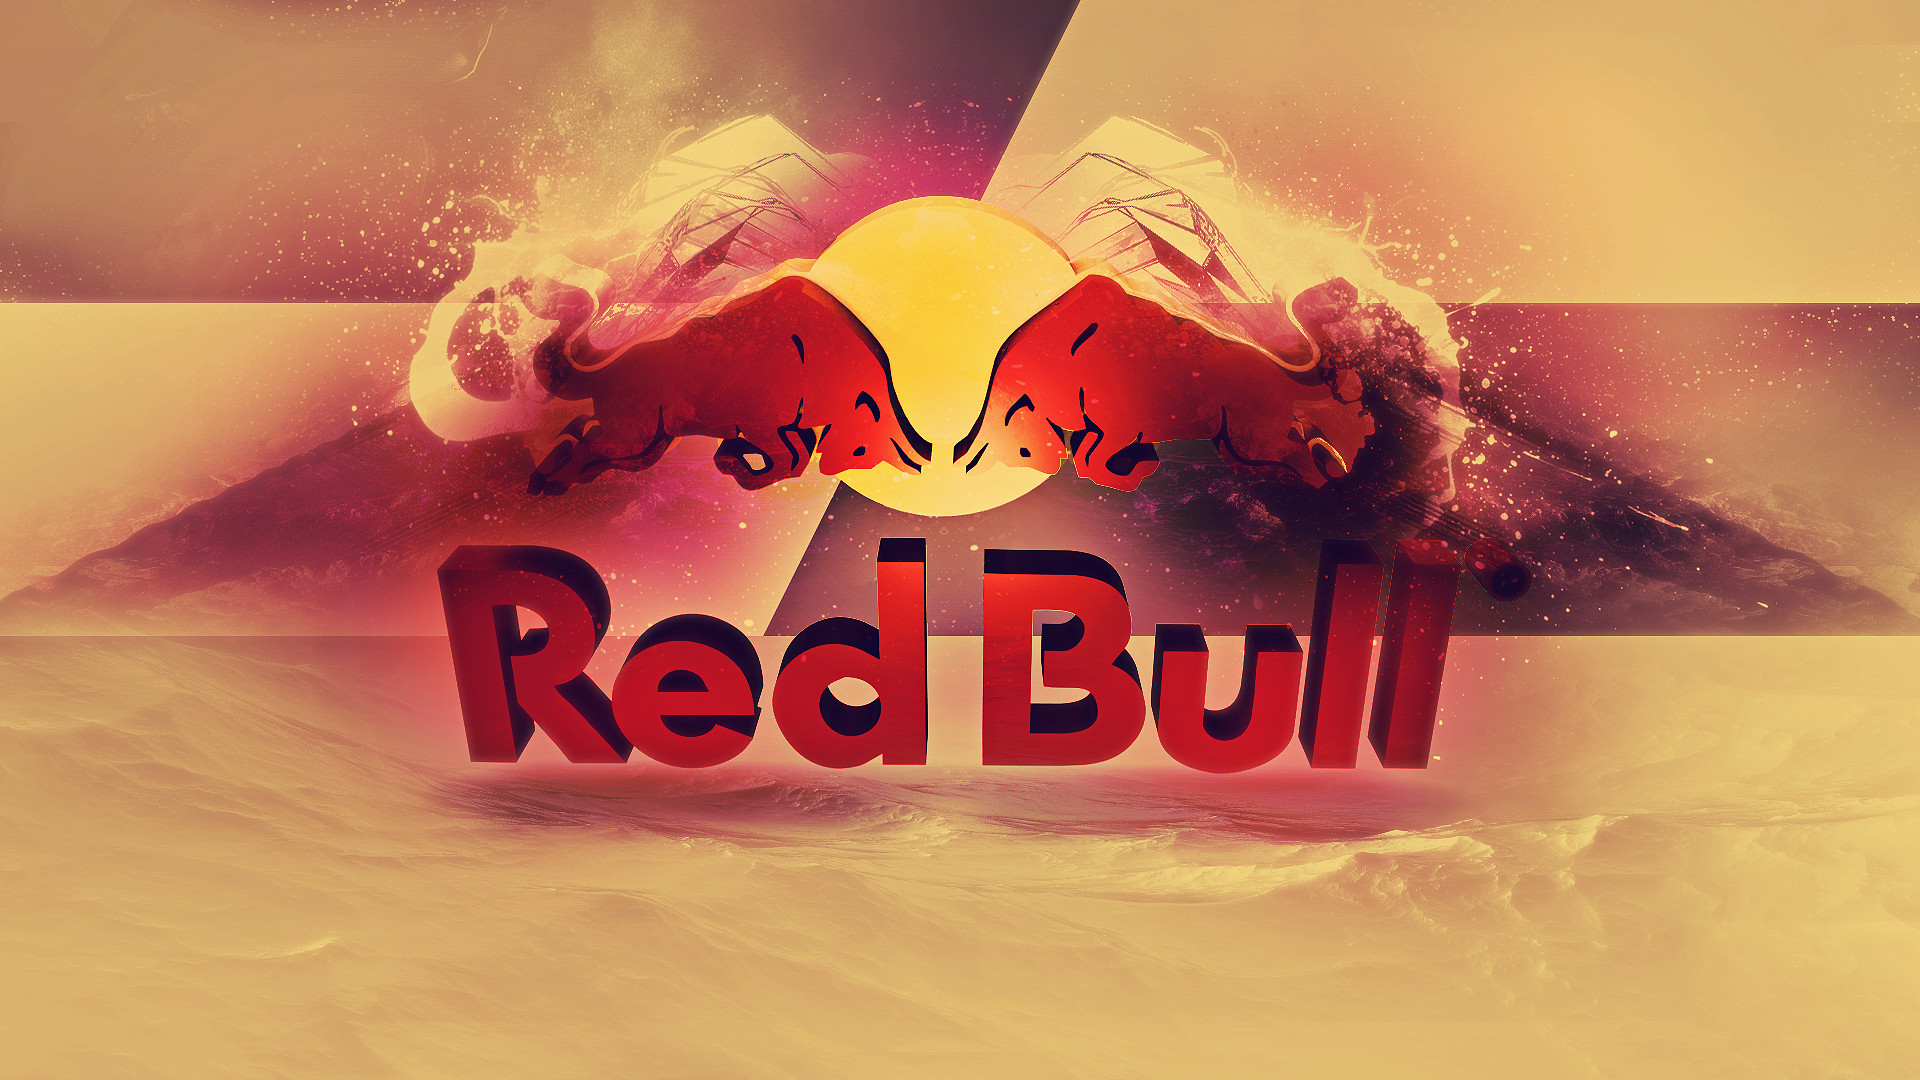 1920x1080 Red Bull Wallpaper by ChoLLo on DeviantArt